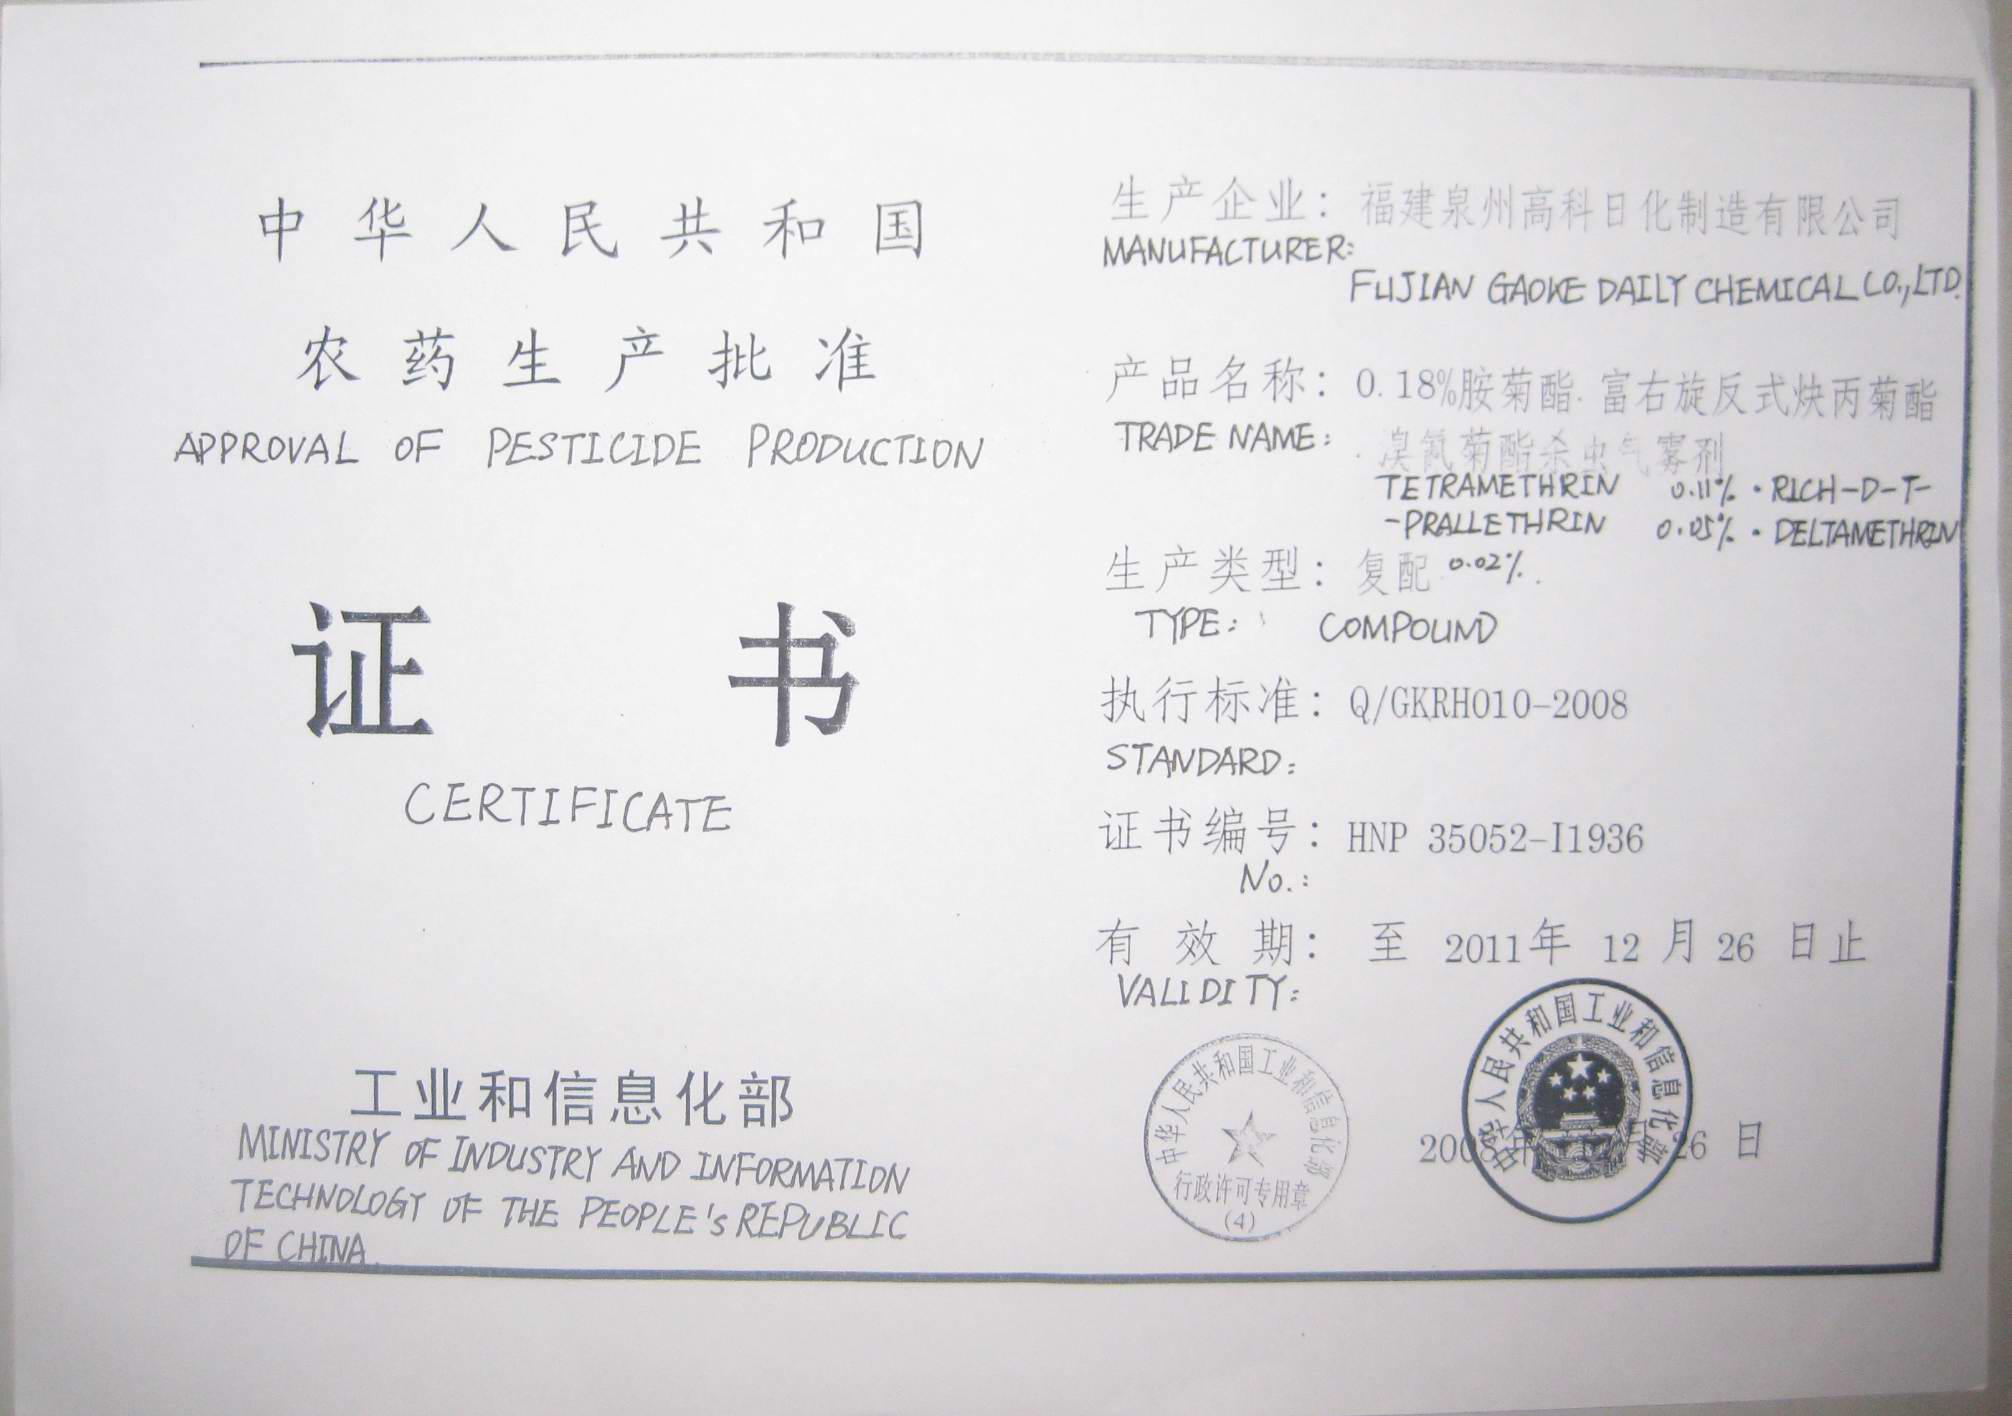 Approval of Pesticide Production Certificate